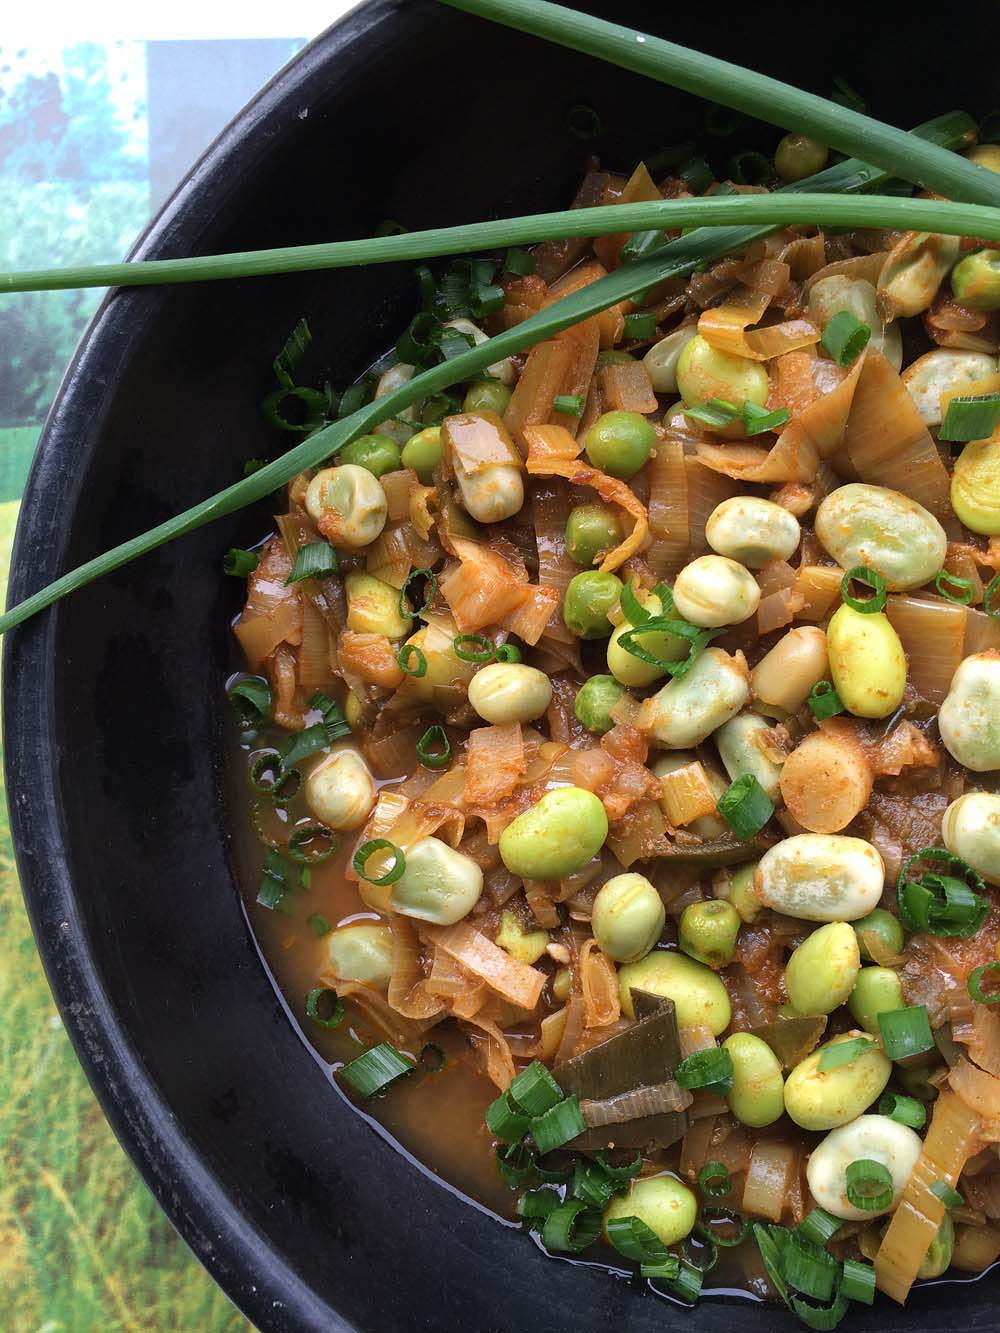 ... Seasonal Veg Table: Green Chili with Welsh Leeks and Edamame Beans